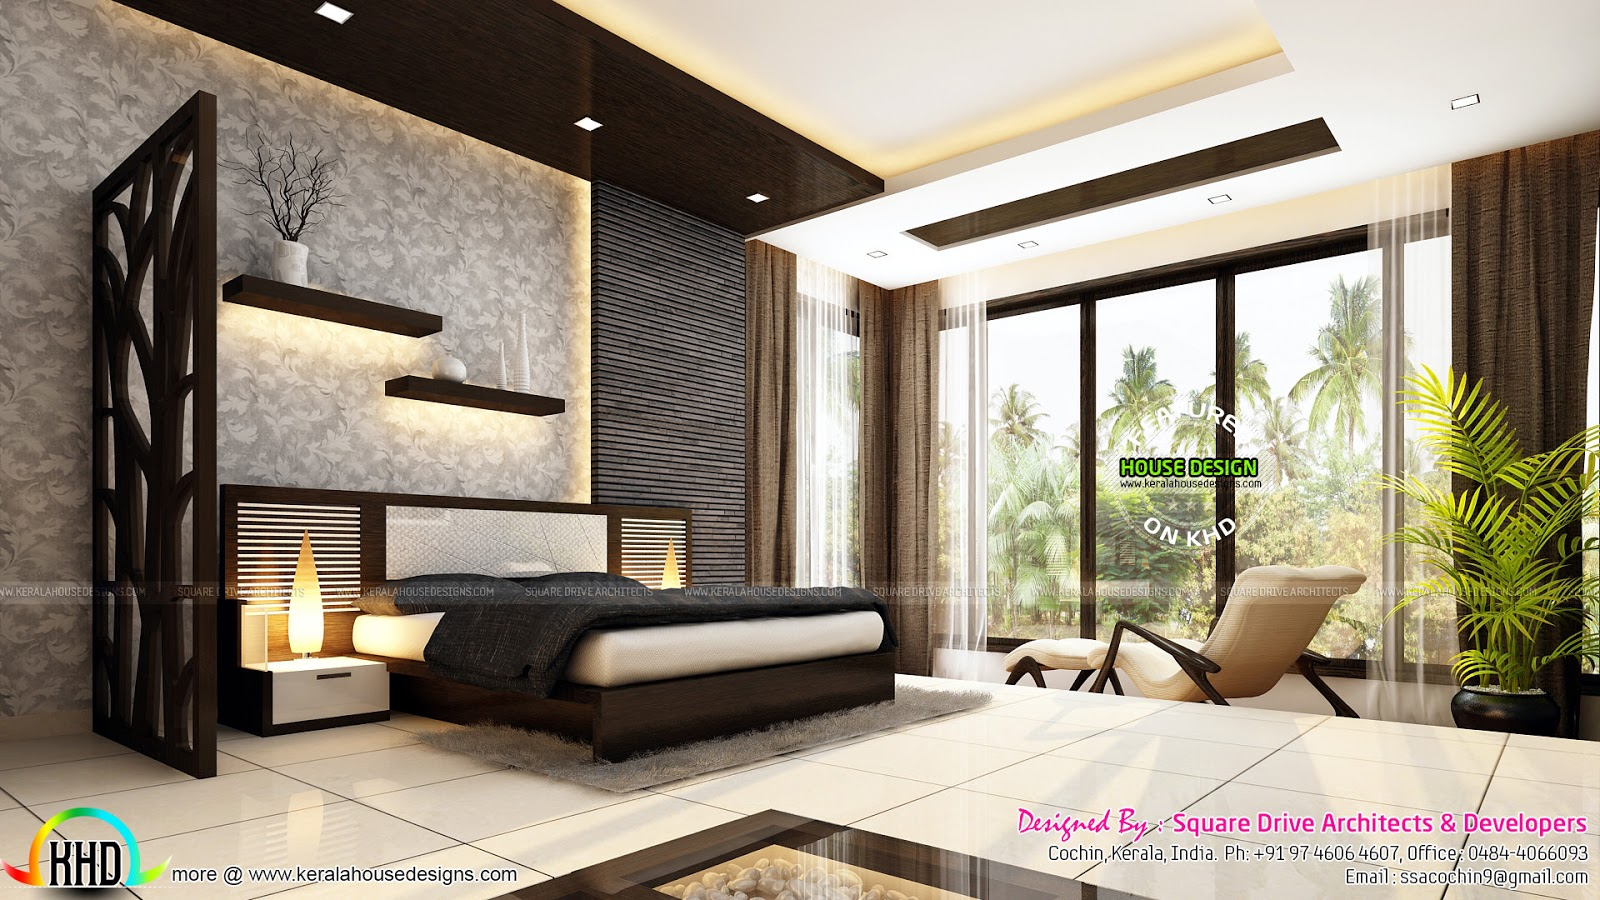 Very beautiful modern interior designs kerala home Interior home